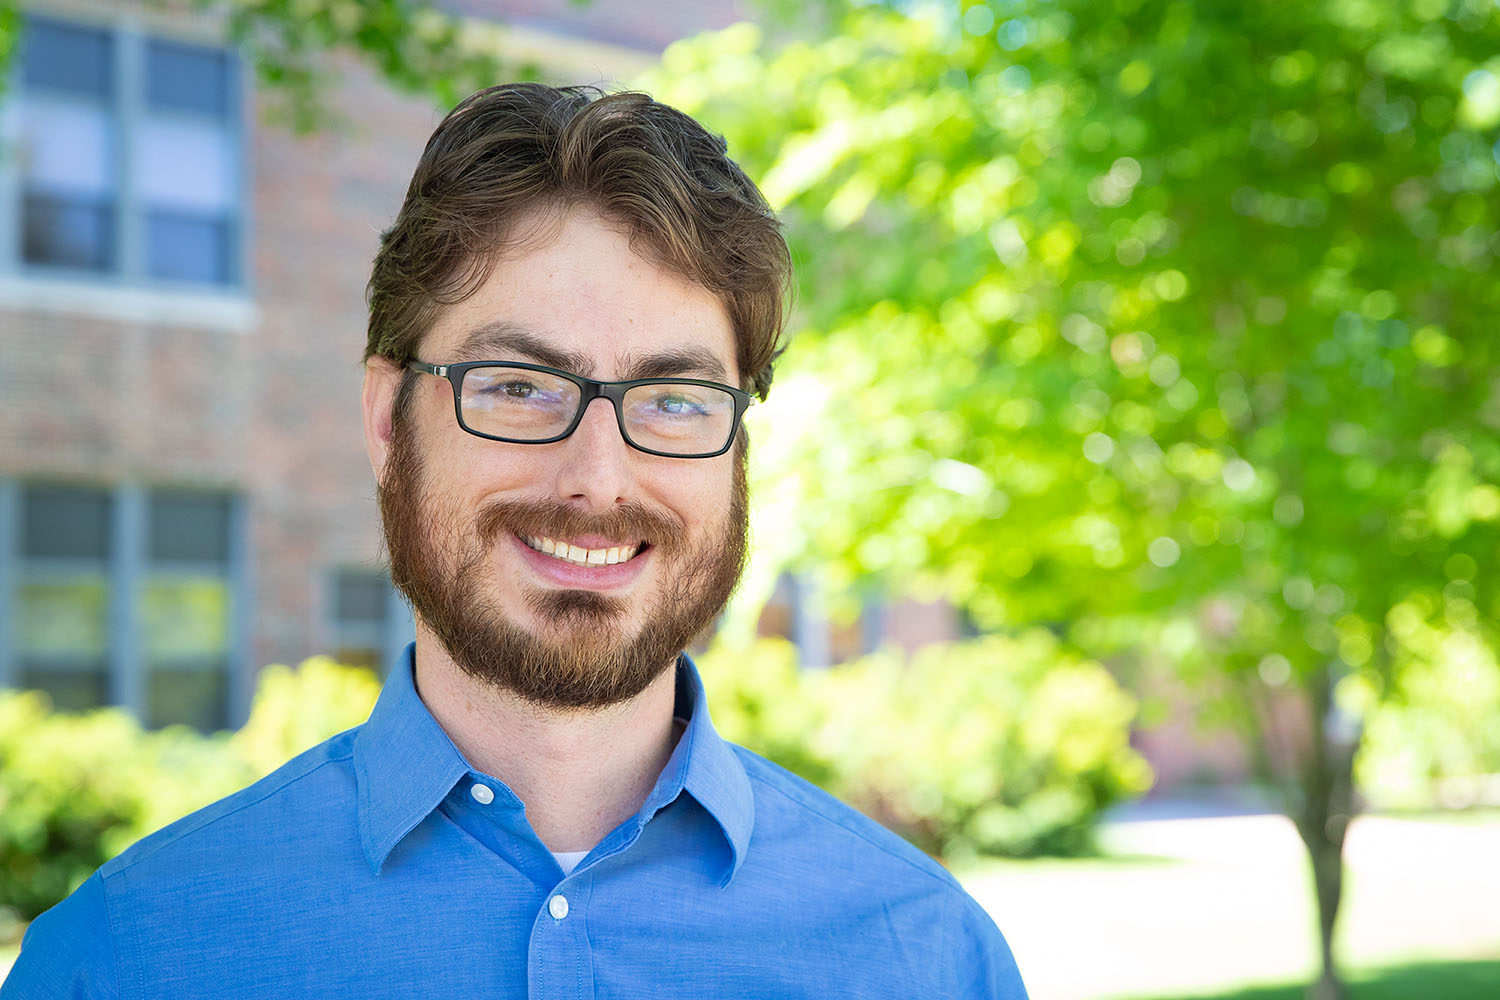 Will Stoutamire returned to UNK this summer as an assistant professor in the department of history. He'll lead UNK's public history programs, which include a public history minor at the undergraduate level and a public history emphasis as part of the Master of Arts in history program. (Photo by Corbey R. Dorsey, UNK Communications)